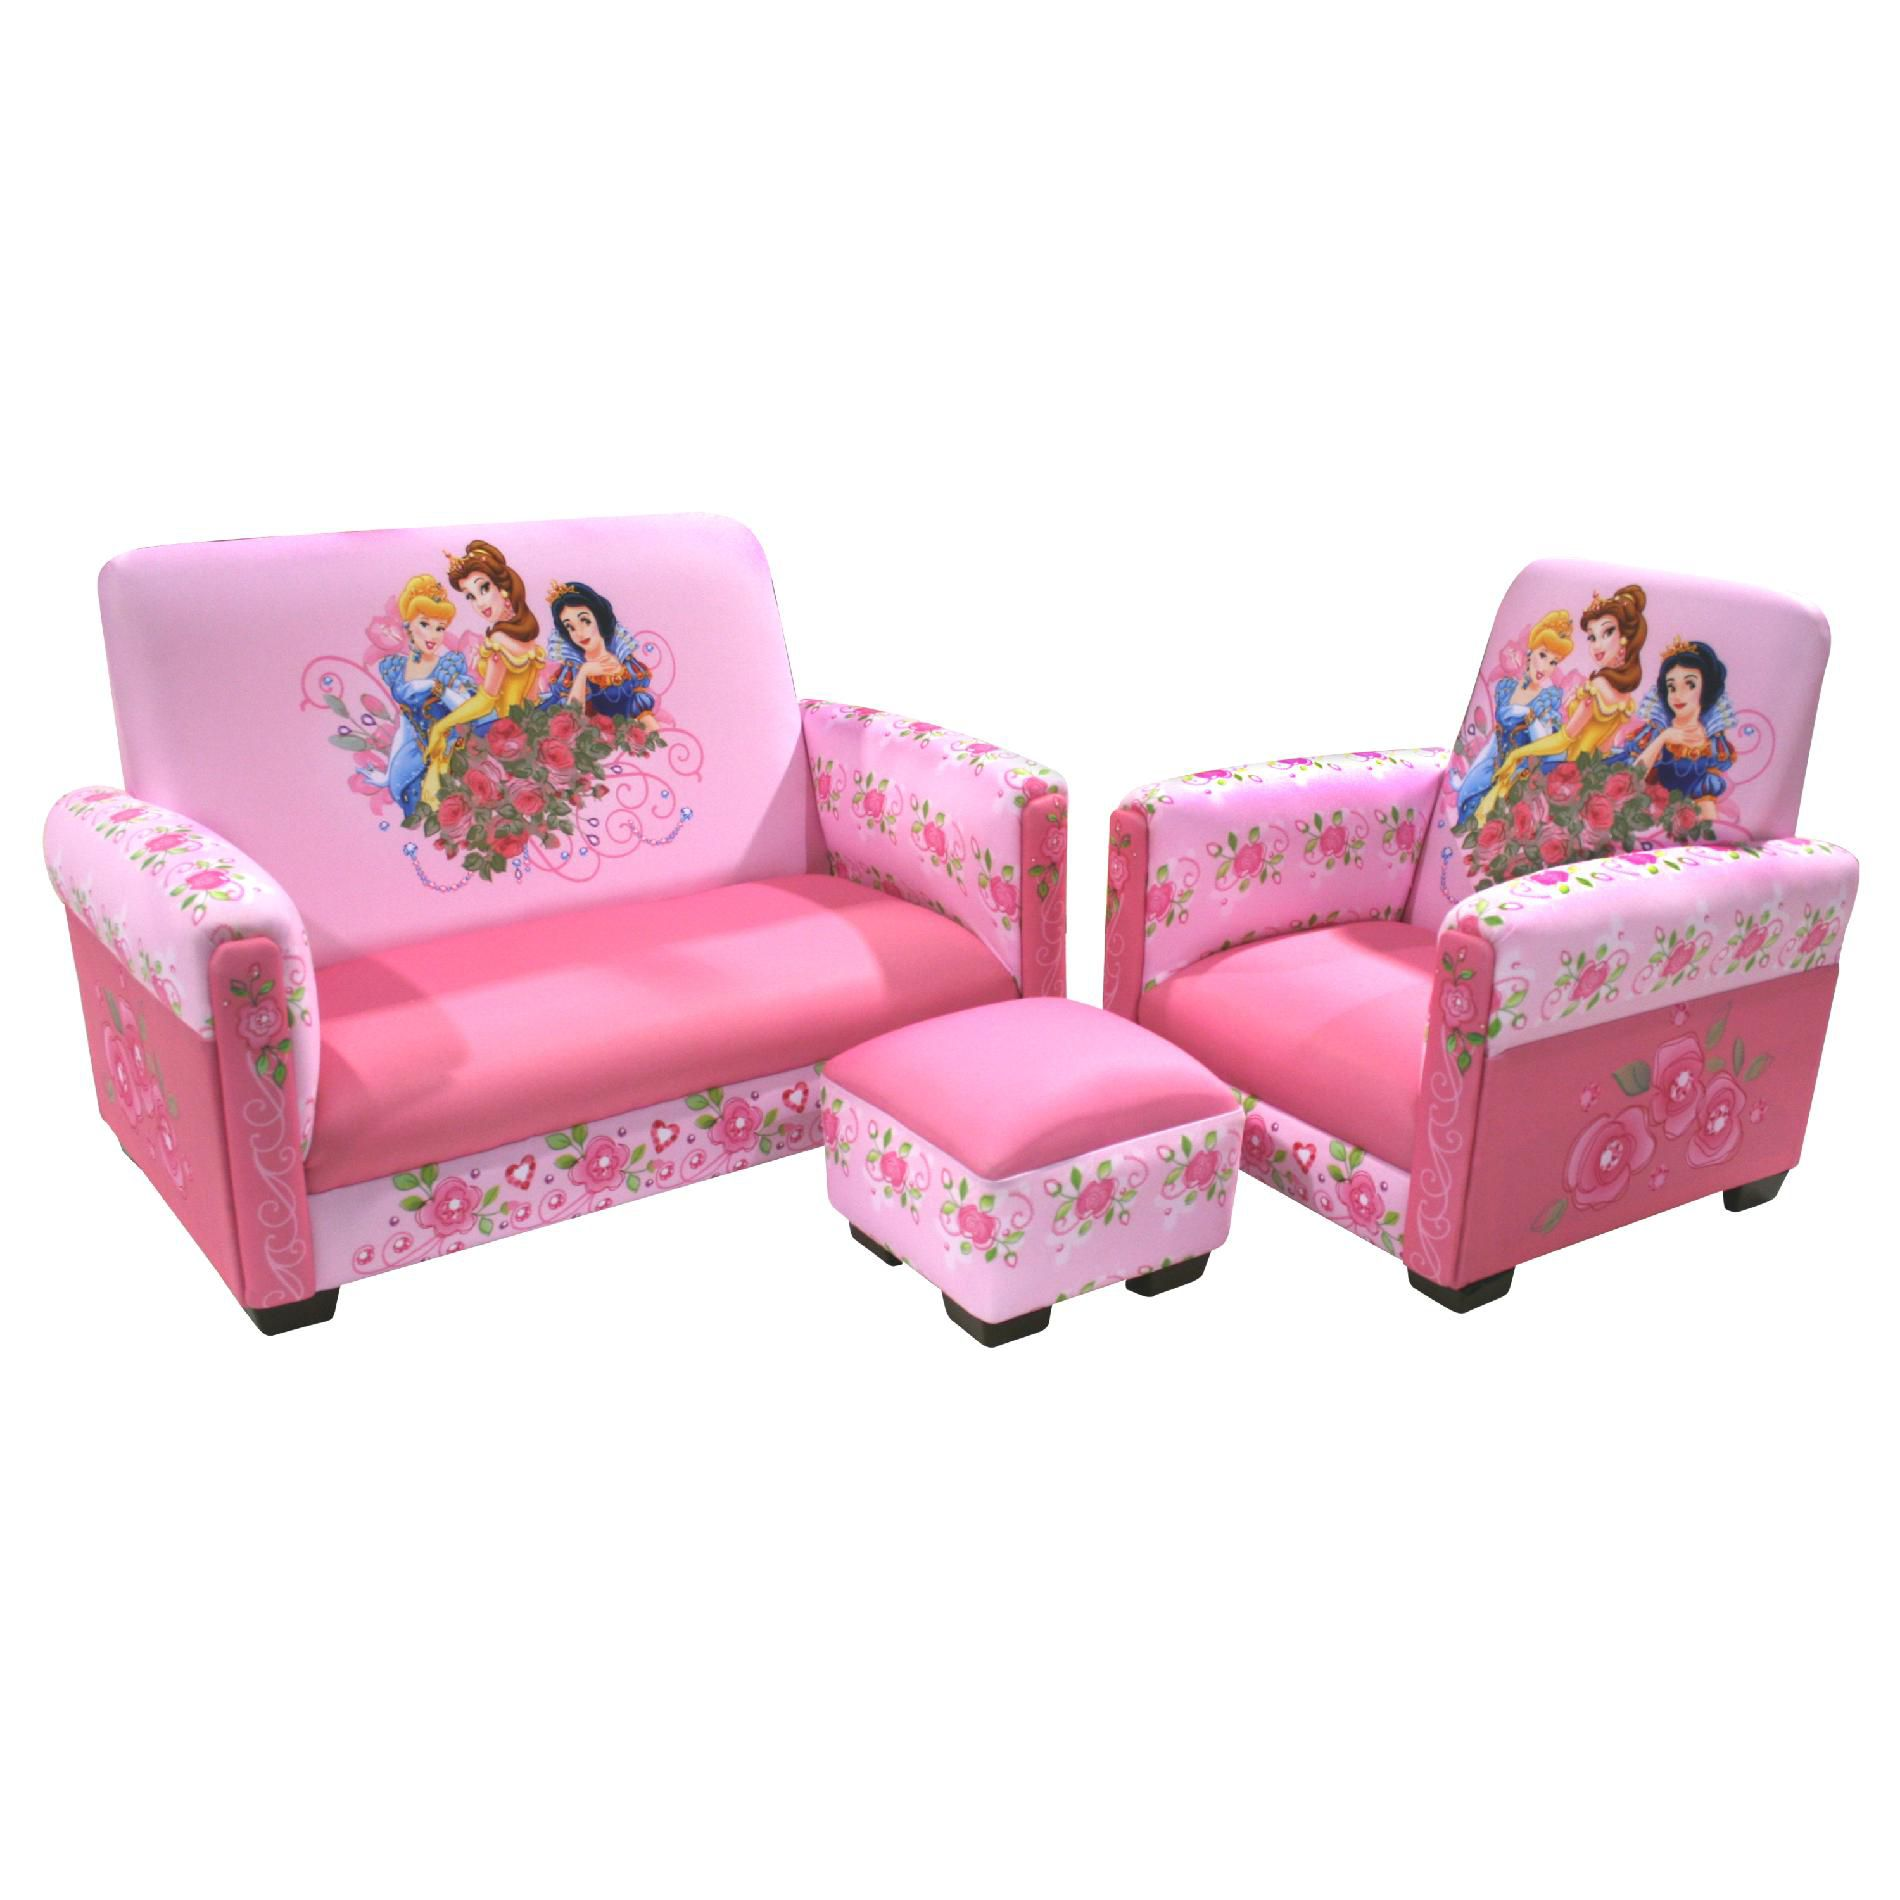 Toddler Sofa Chair Delta Children Disney Princess Jeweled Gardens Toddler